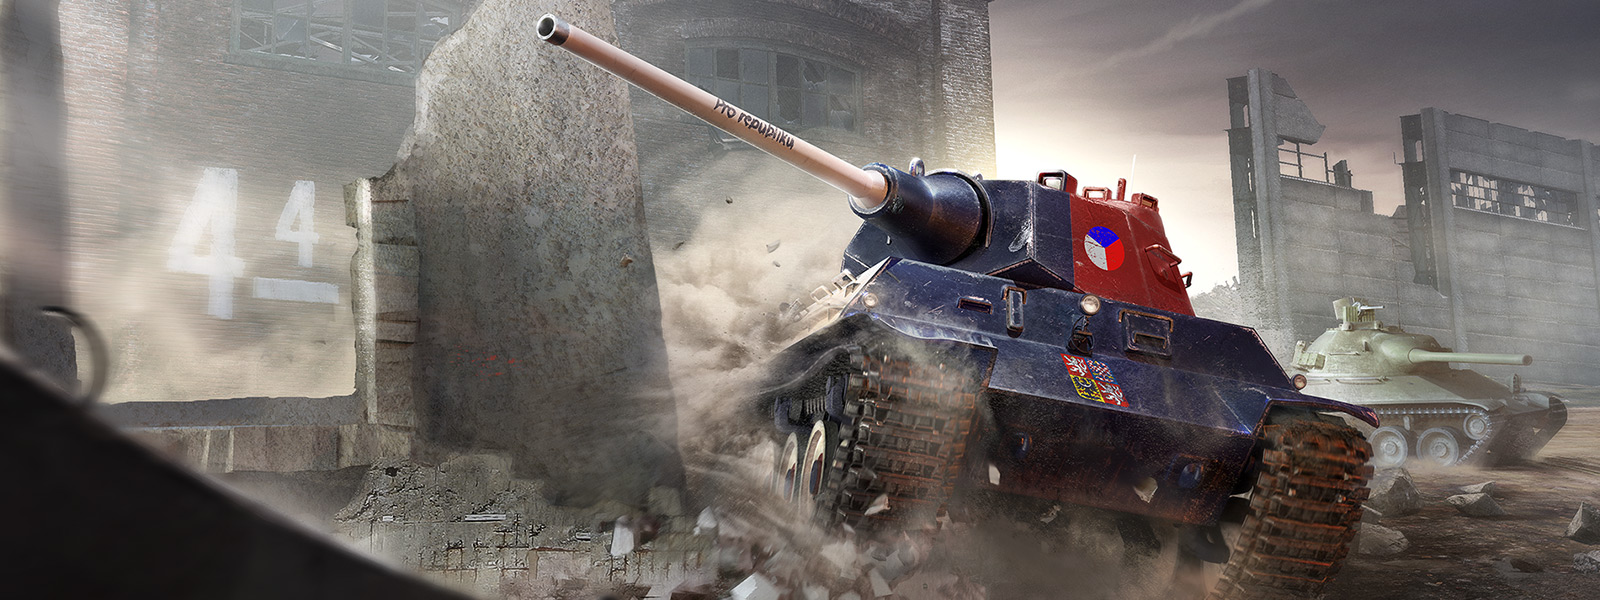 Map World Of Tanks Pc To Controller%0A     Czechoslovakian tanks drive through bombed out city